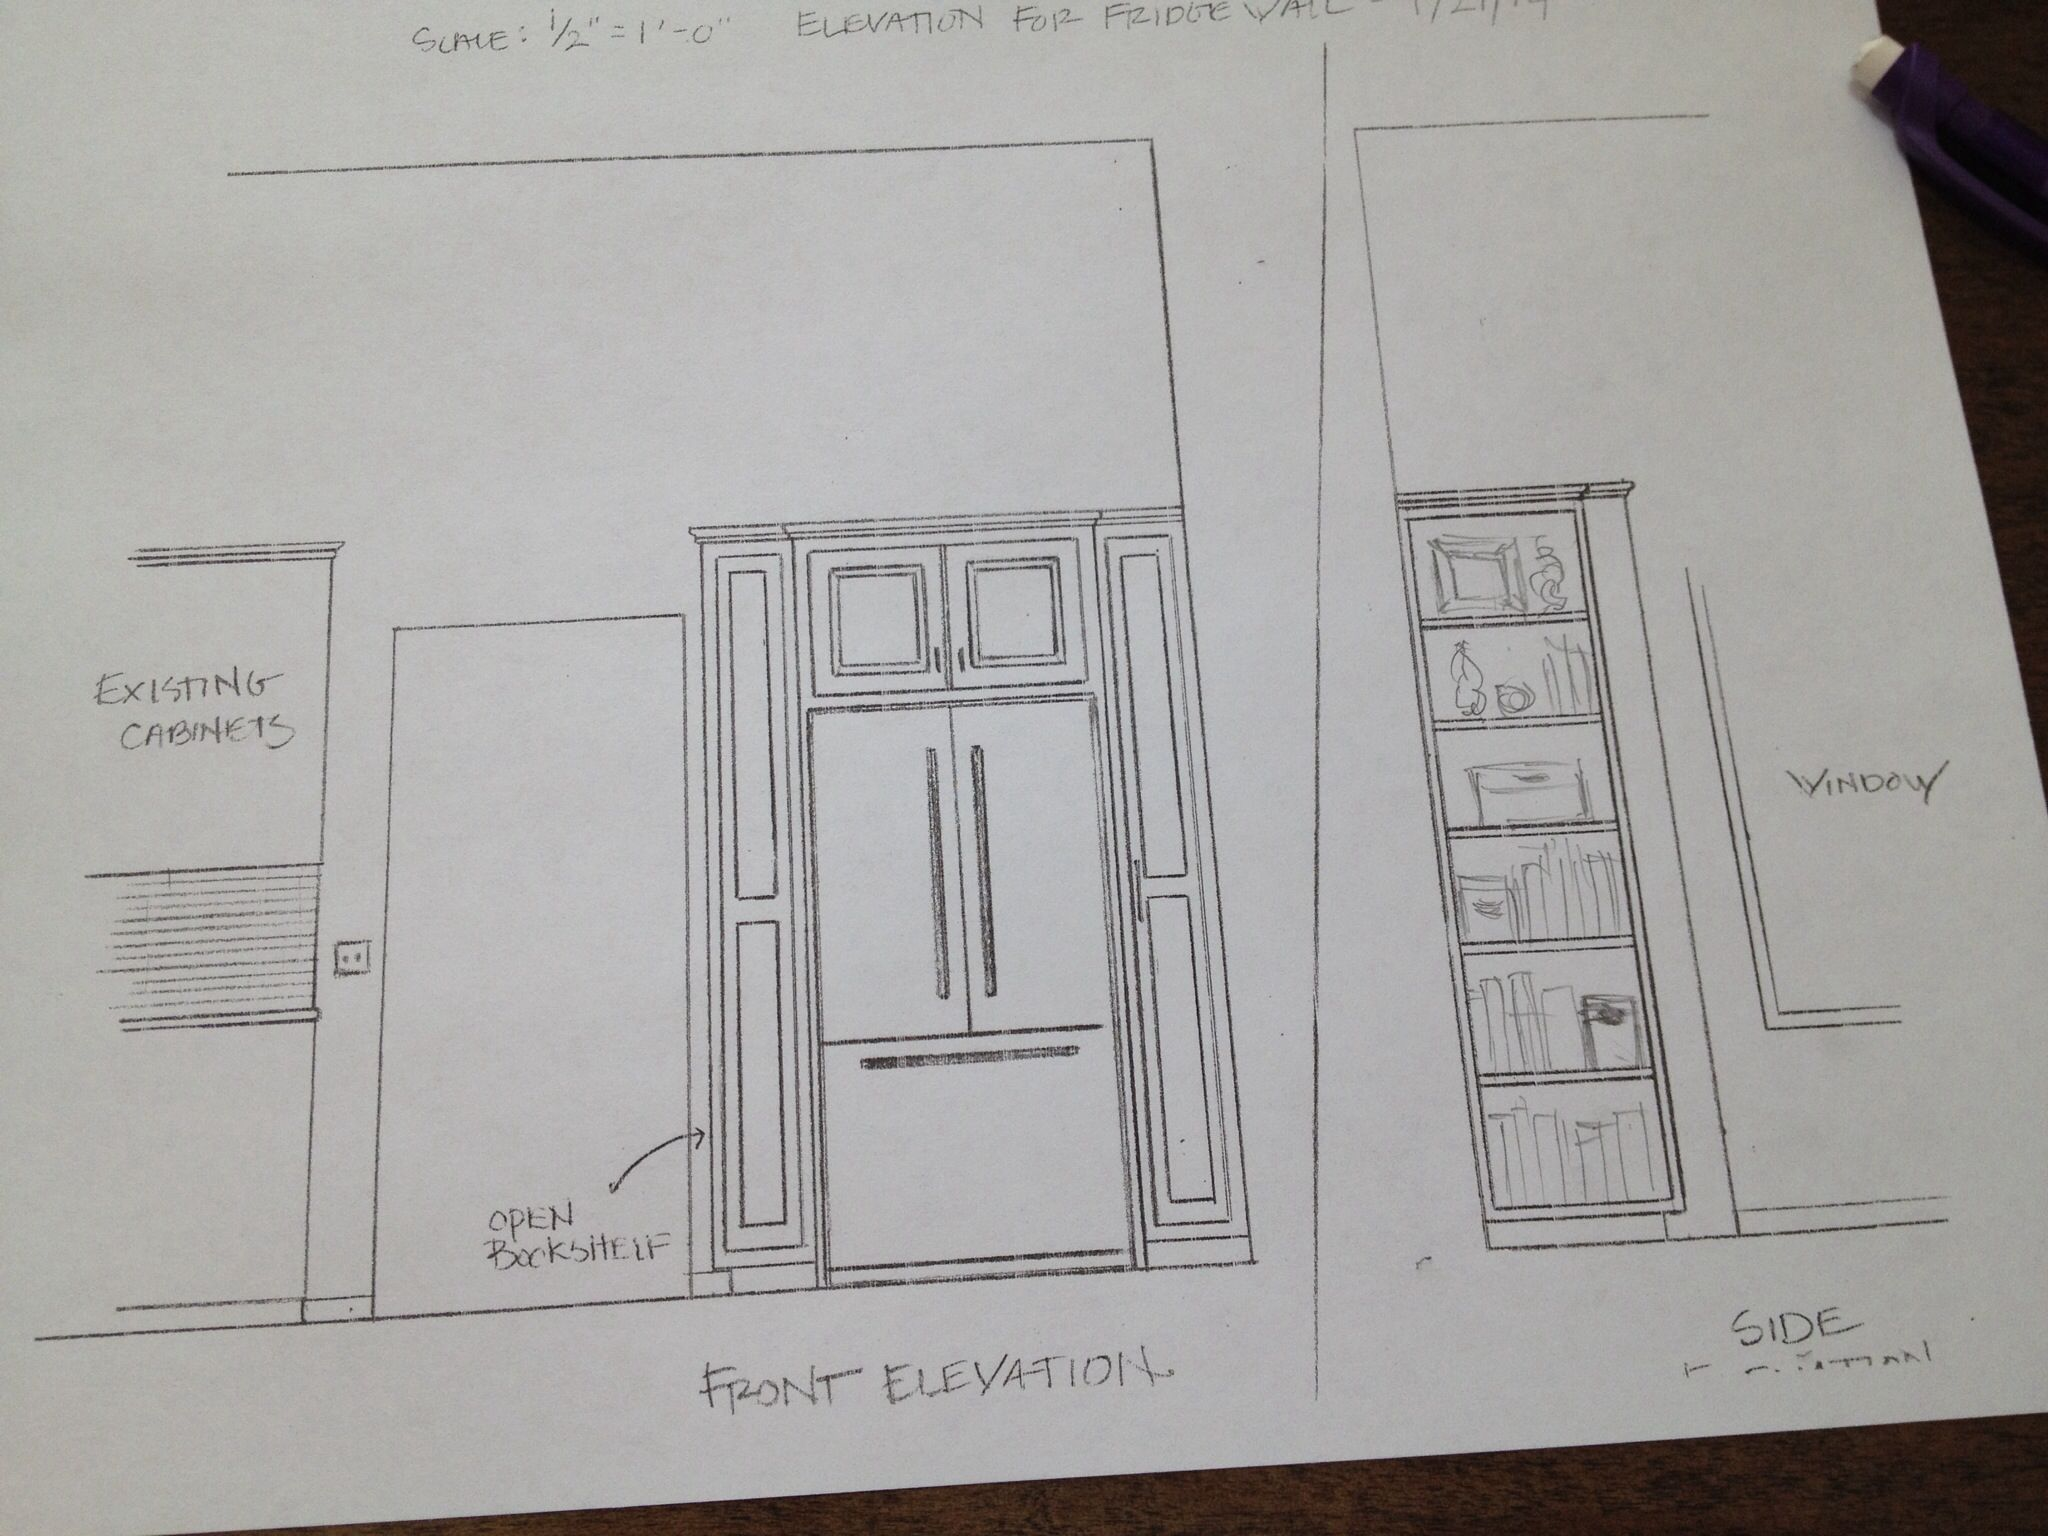 Elevation drawing of a fridge cabinet wall by sarah bernardy design llc